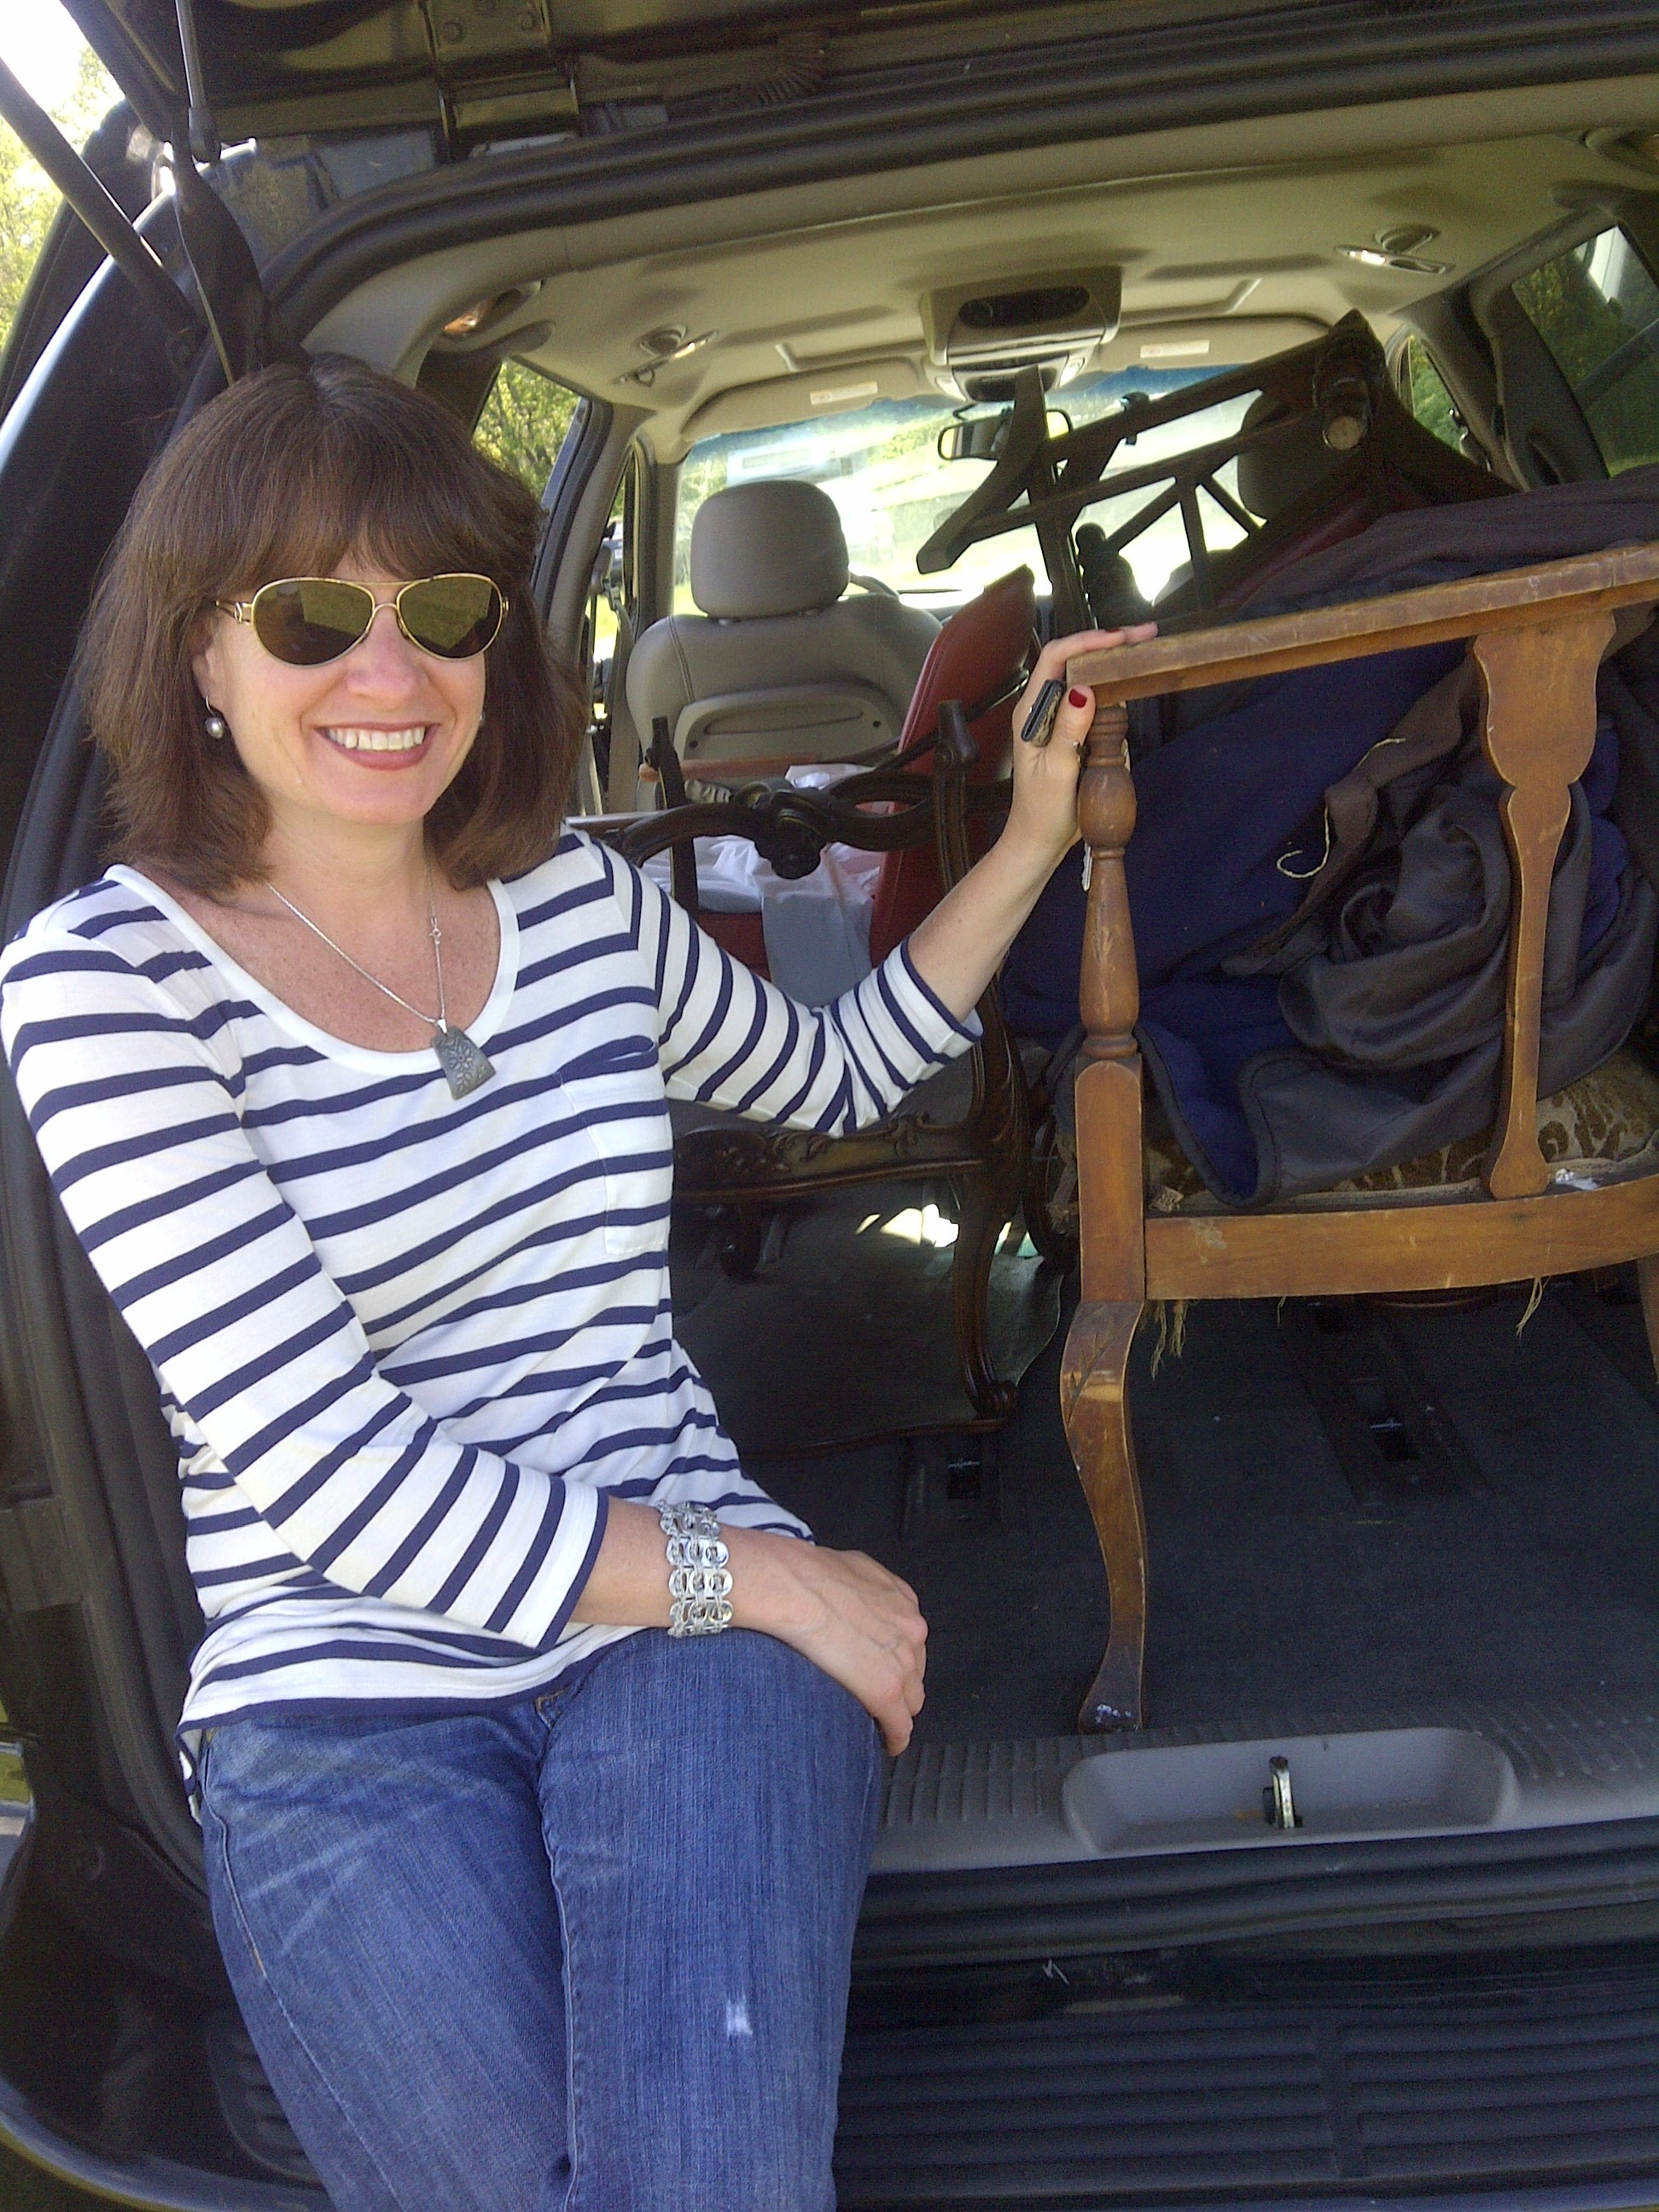 Minivan loaded with great finds at Brimfield Antiques Market in Massachusetts (2013)